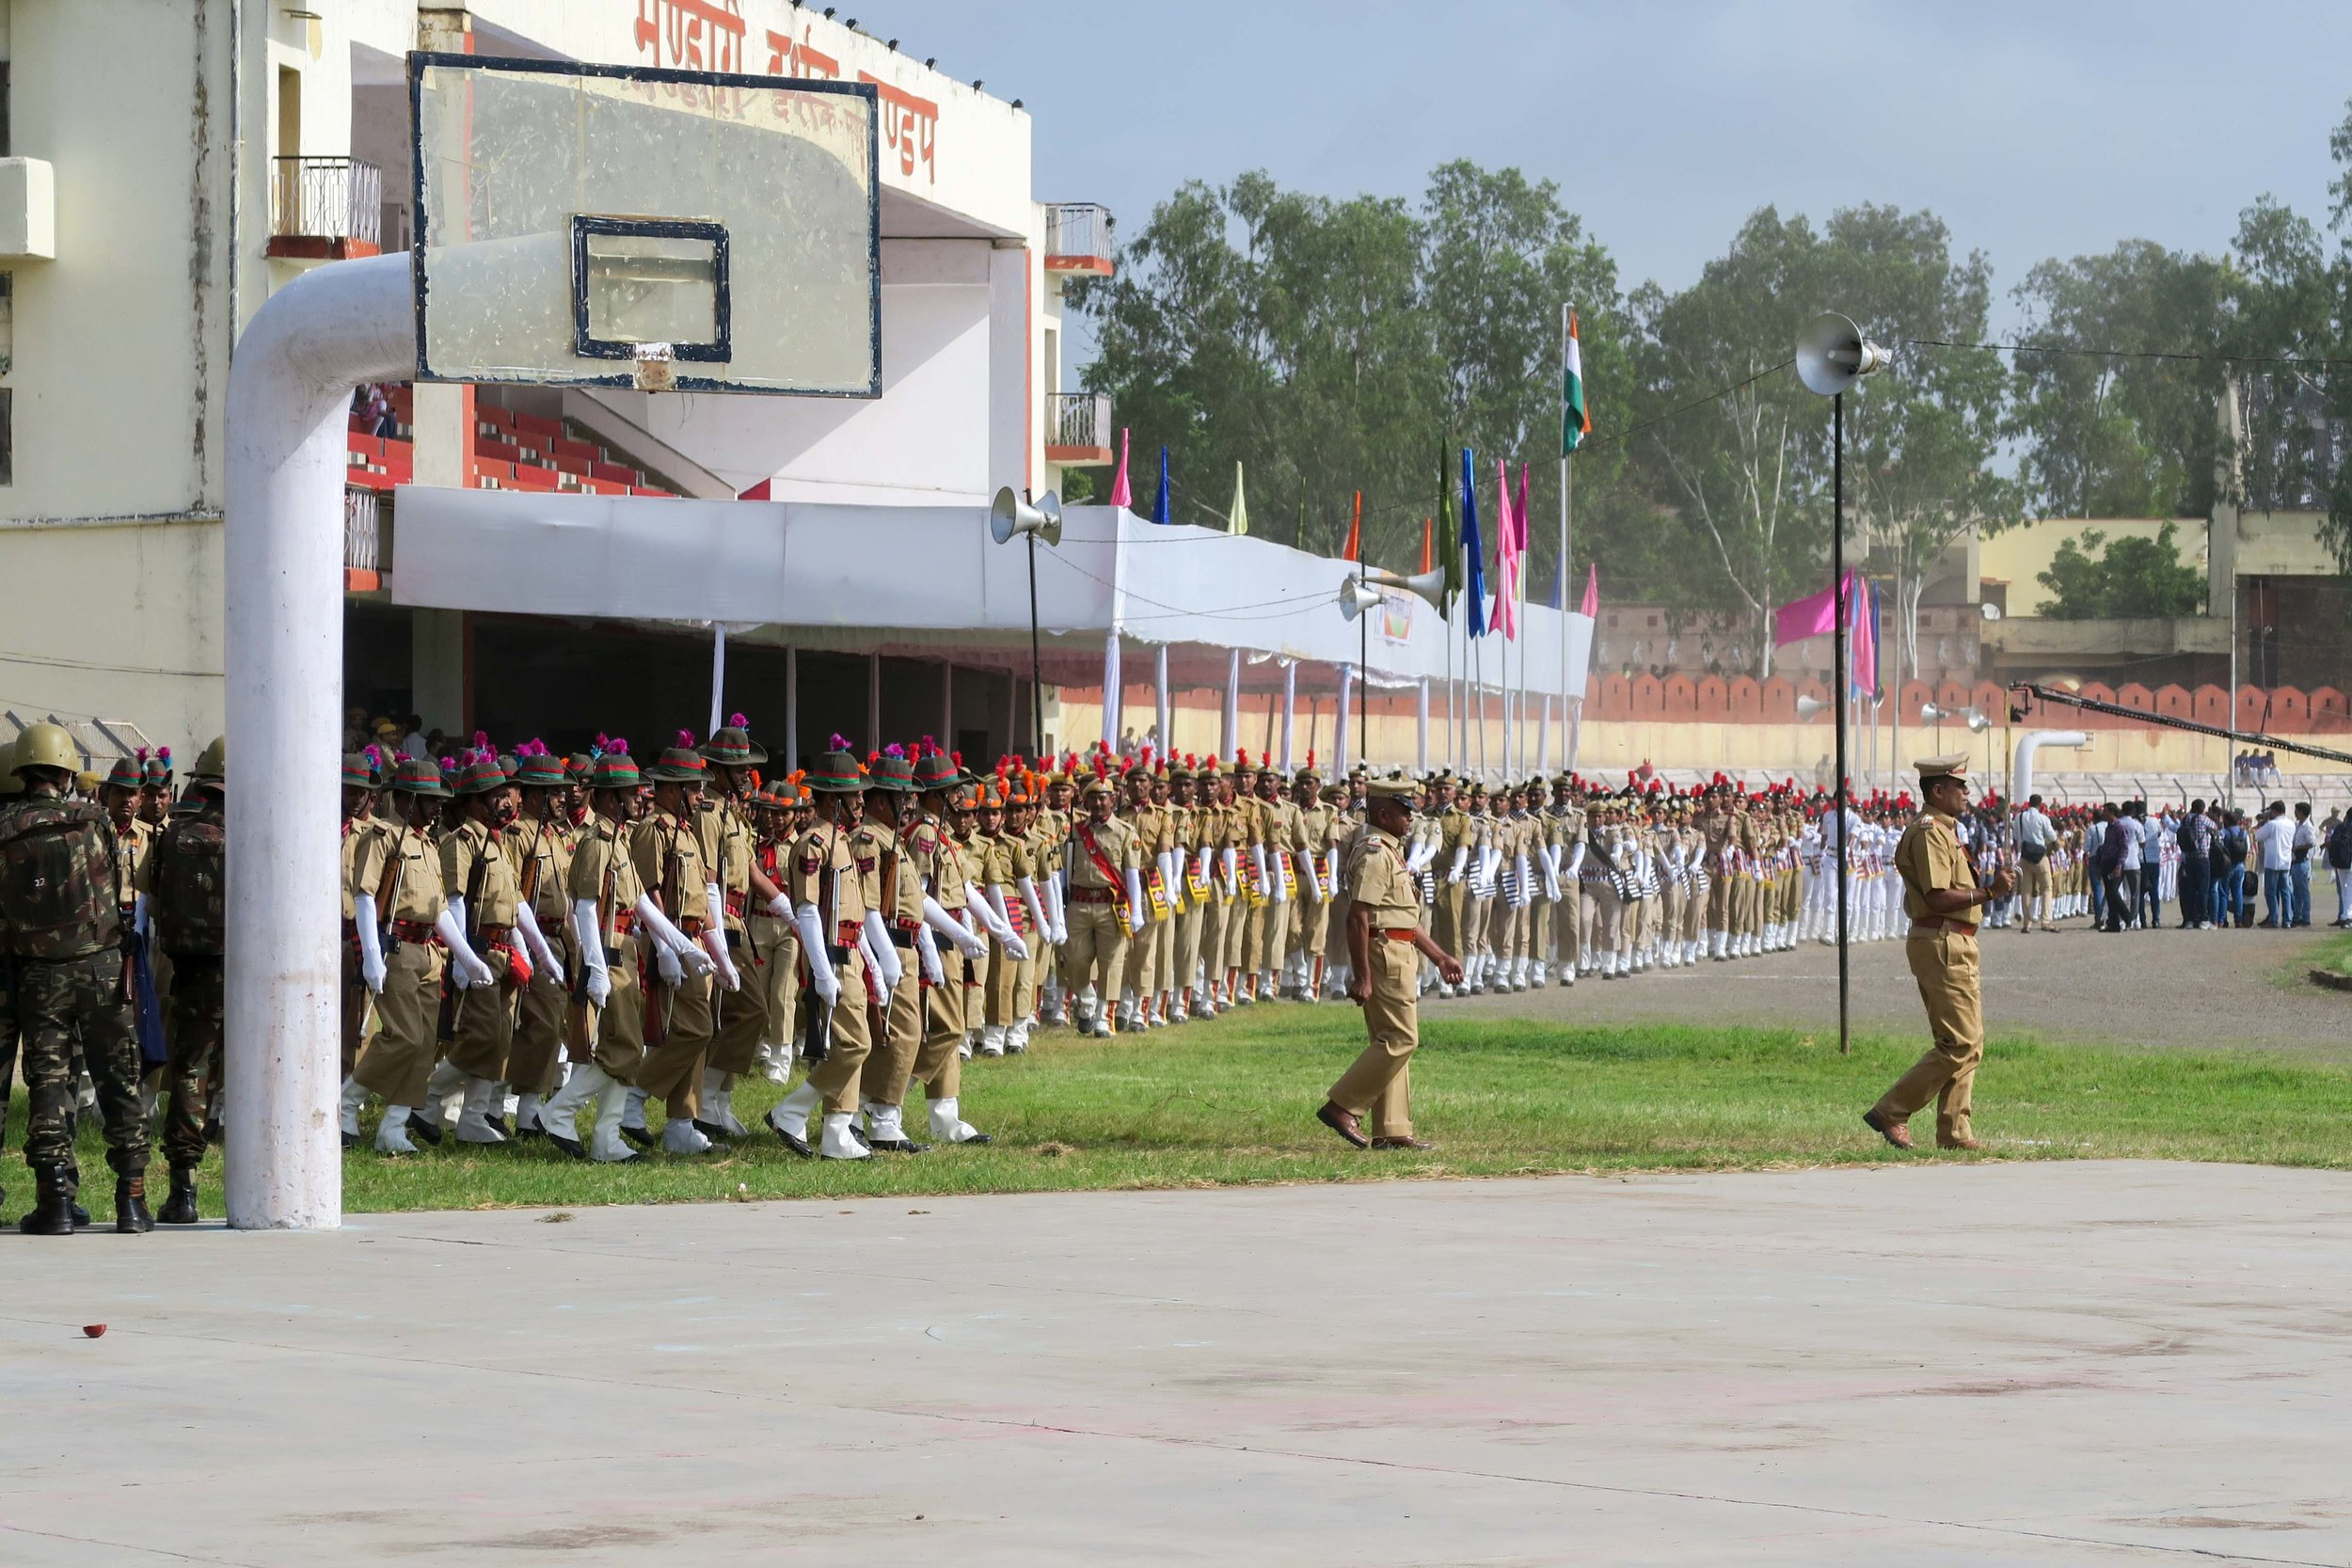 Police on parade in Gandhi Ground